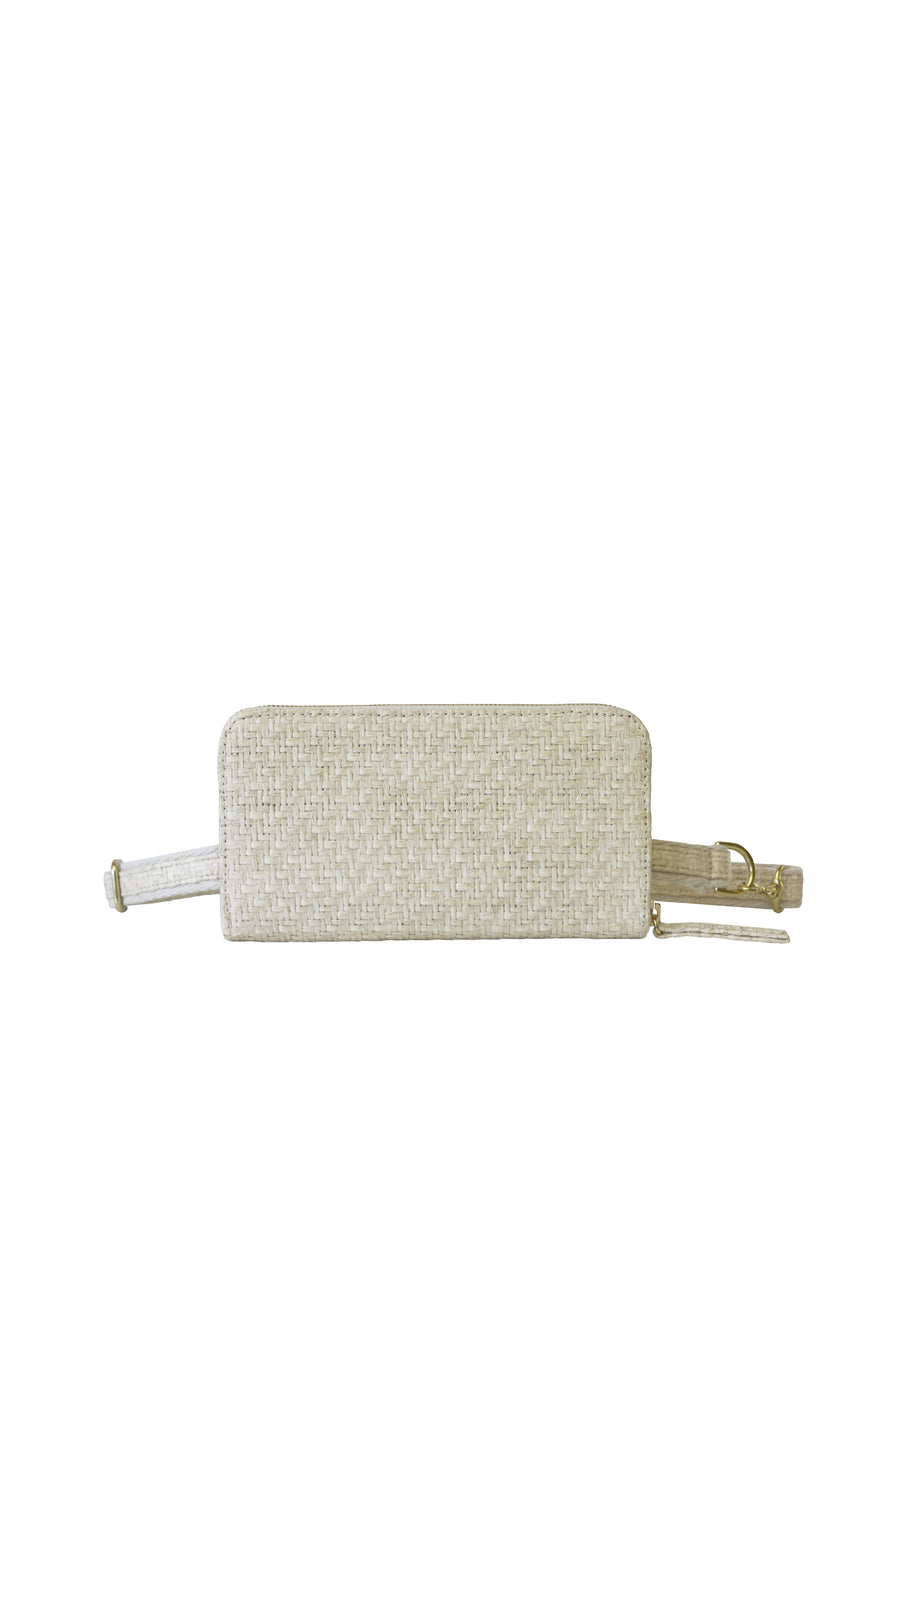 HFS Collective White Sand Raffia Convertible Wallet